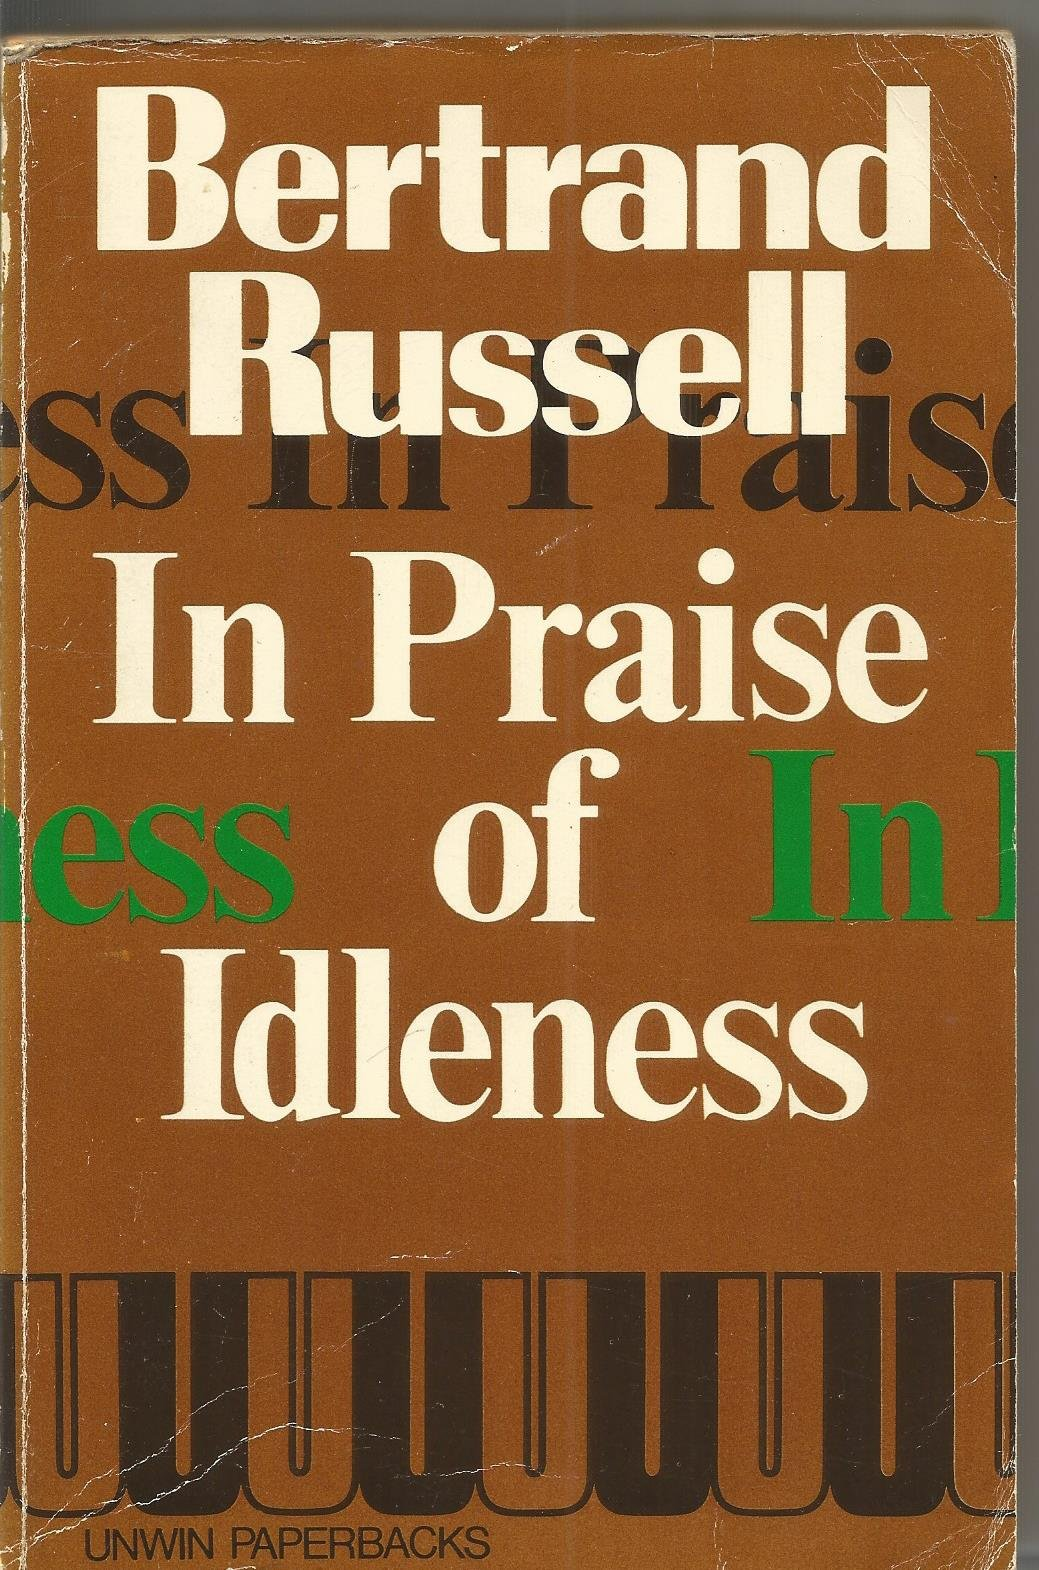 bertrand russell in praise of idleness summary